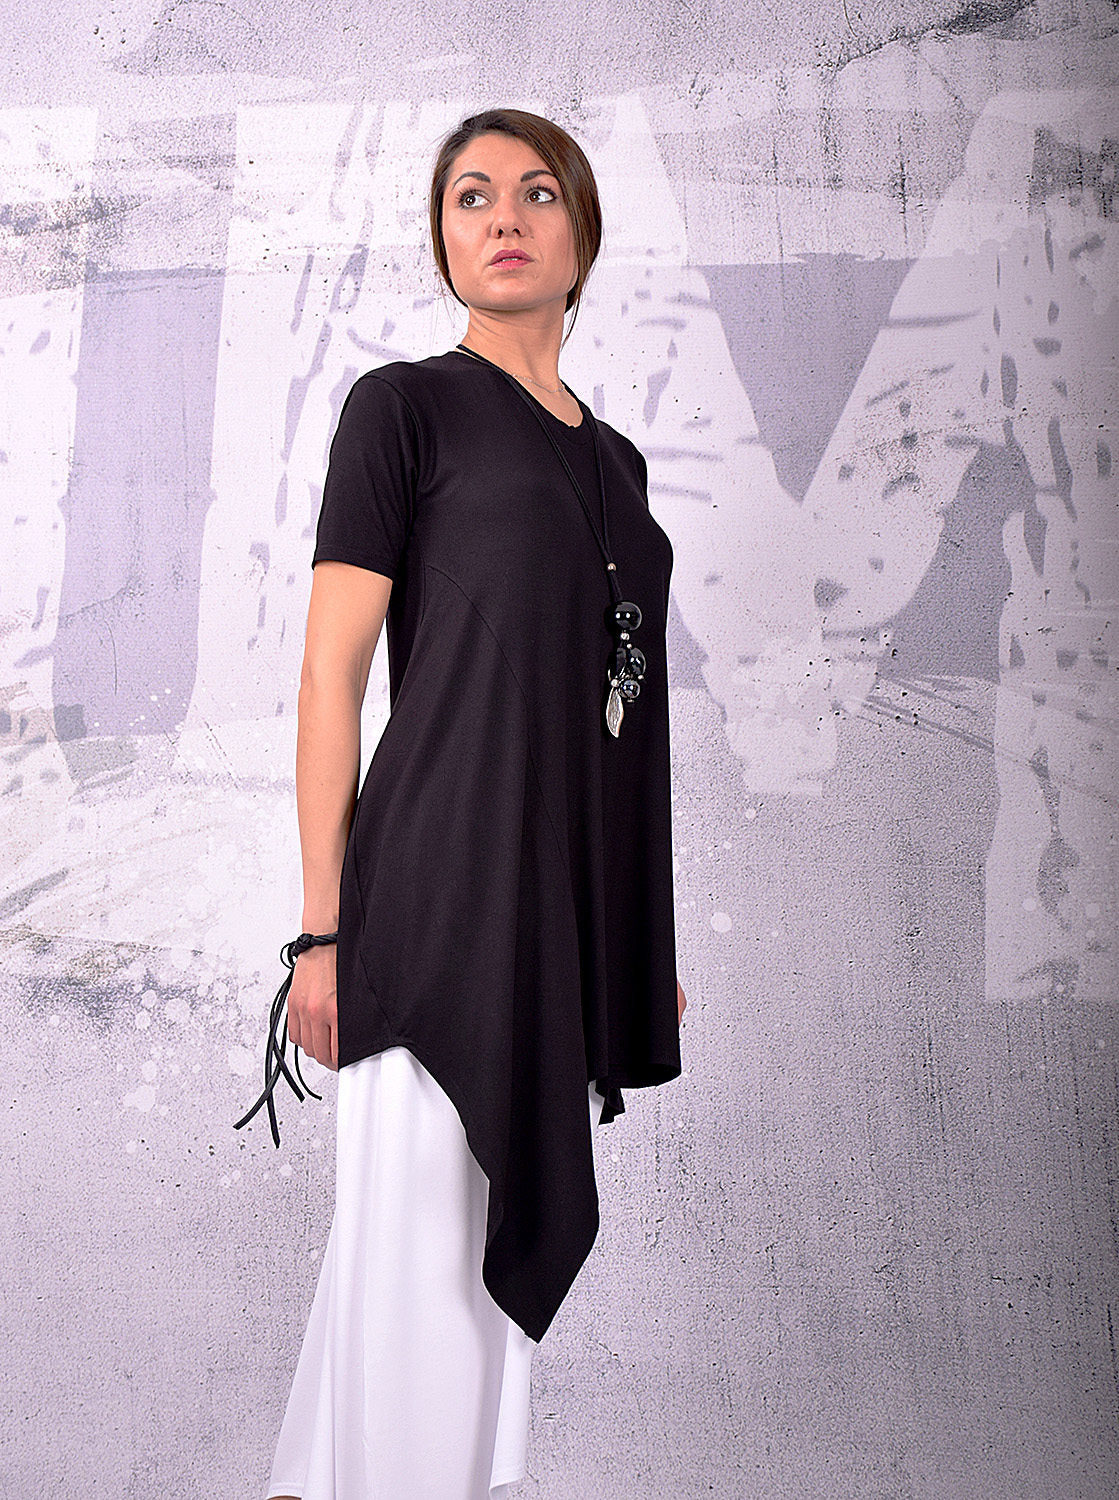 Tunic, Asymmetrical Tunic, Plus Size Tunic, Oversized Tunic, Black Tunic Top, Loose Tunic, Short Sleeves Top by UrbanMood - UM-144-VL